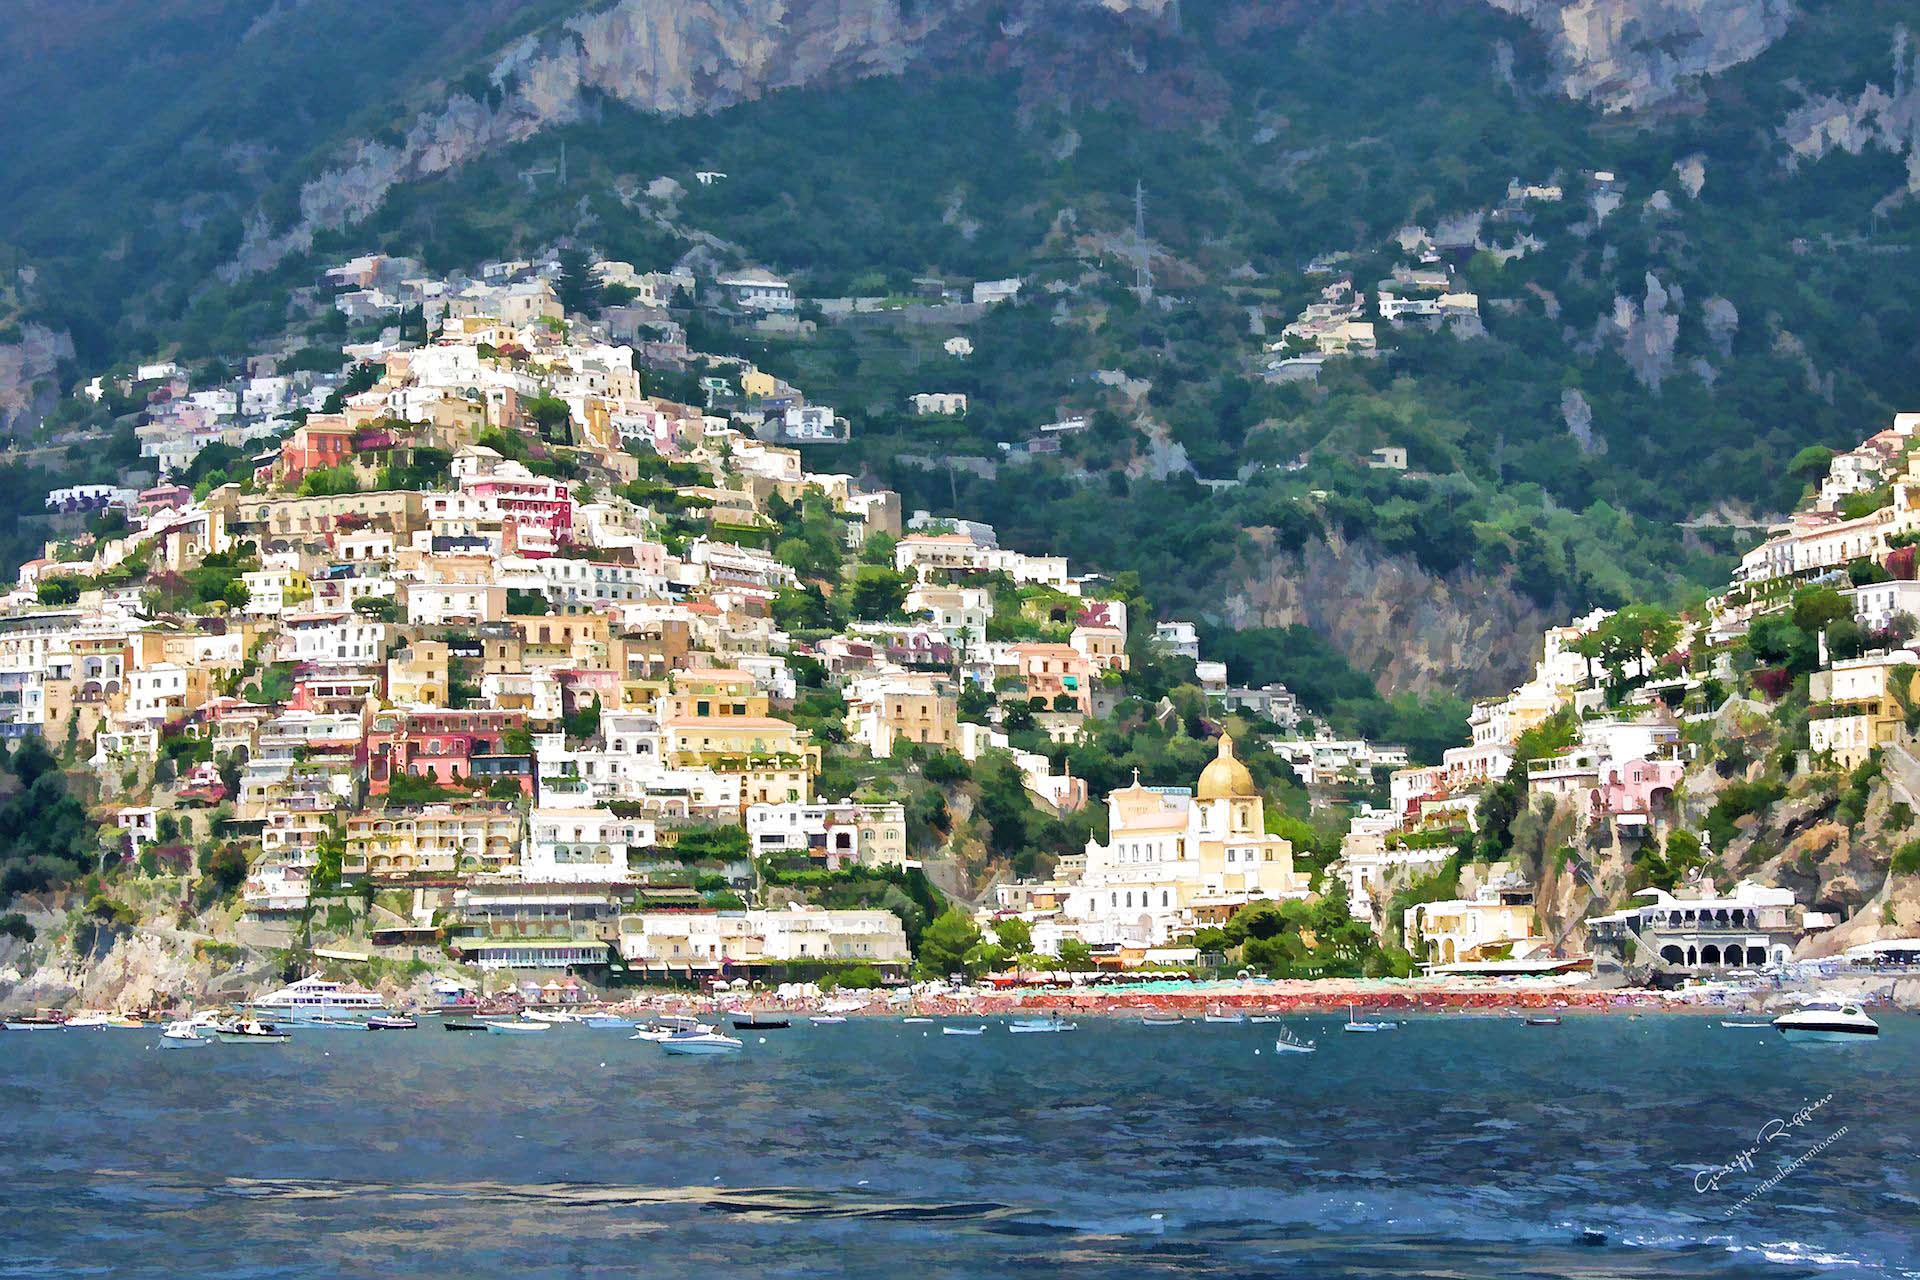 positano_70x50-Version-2